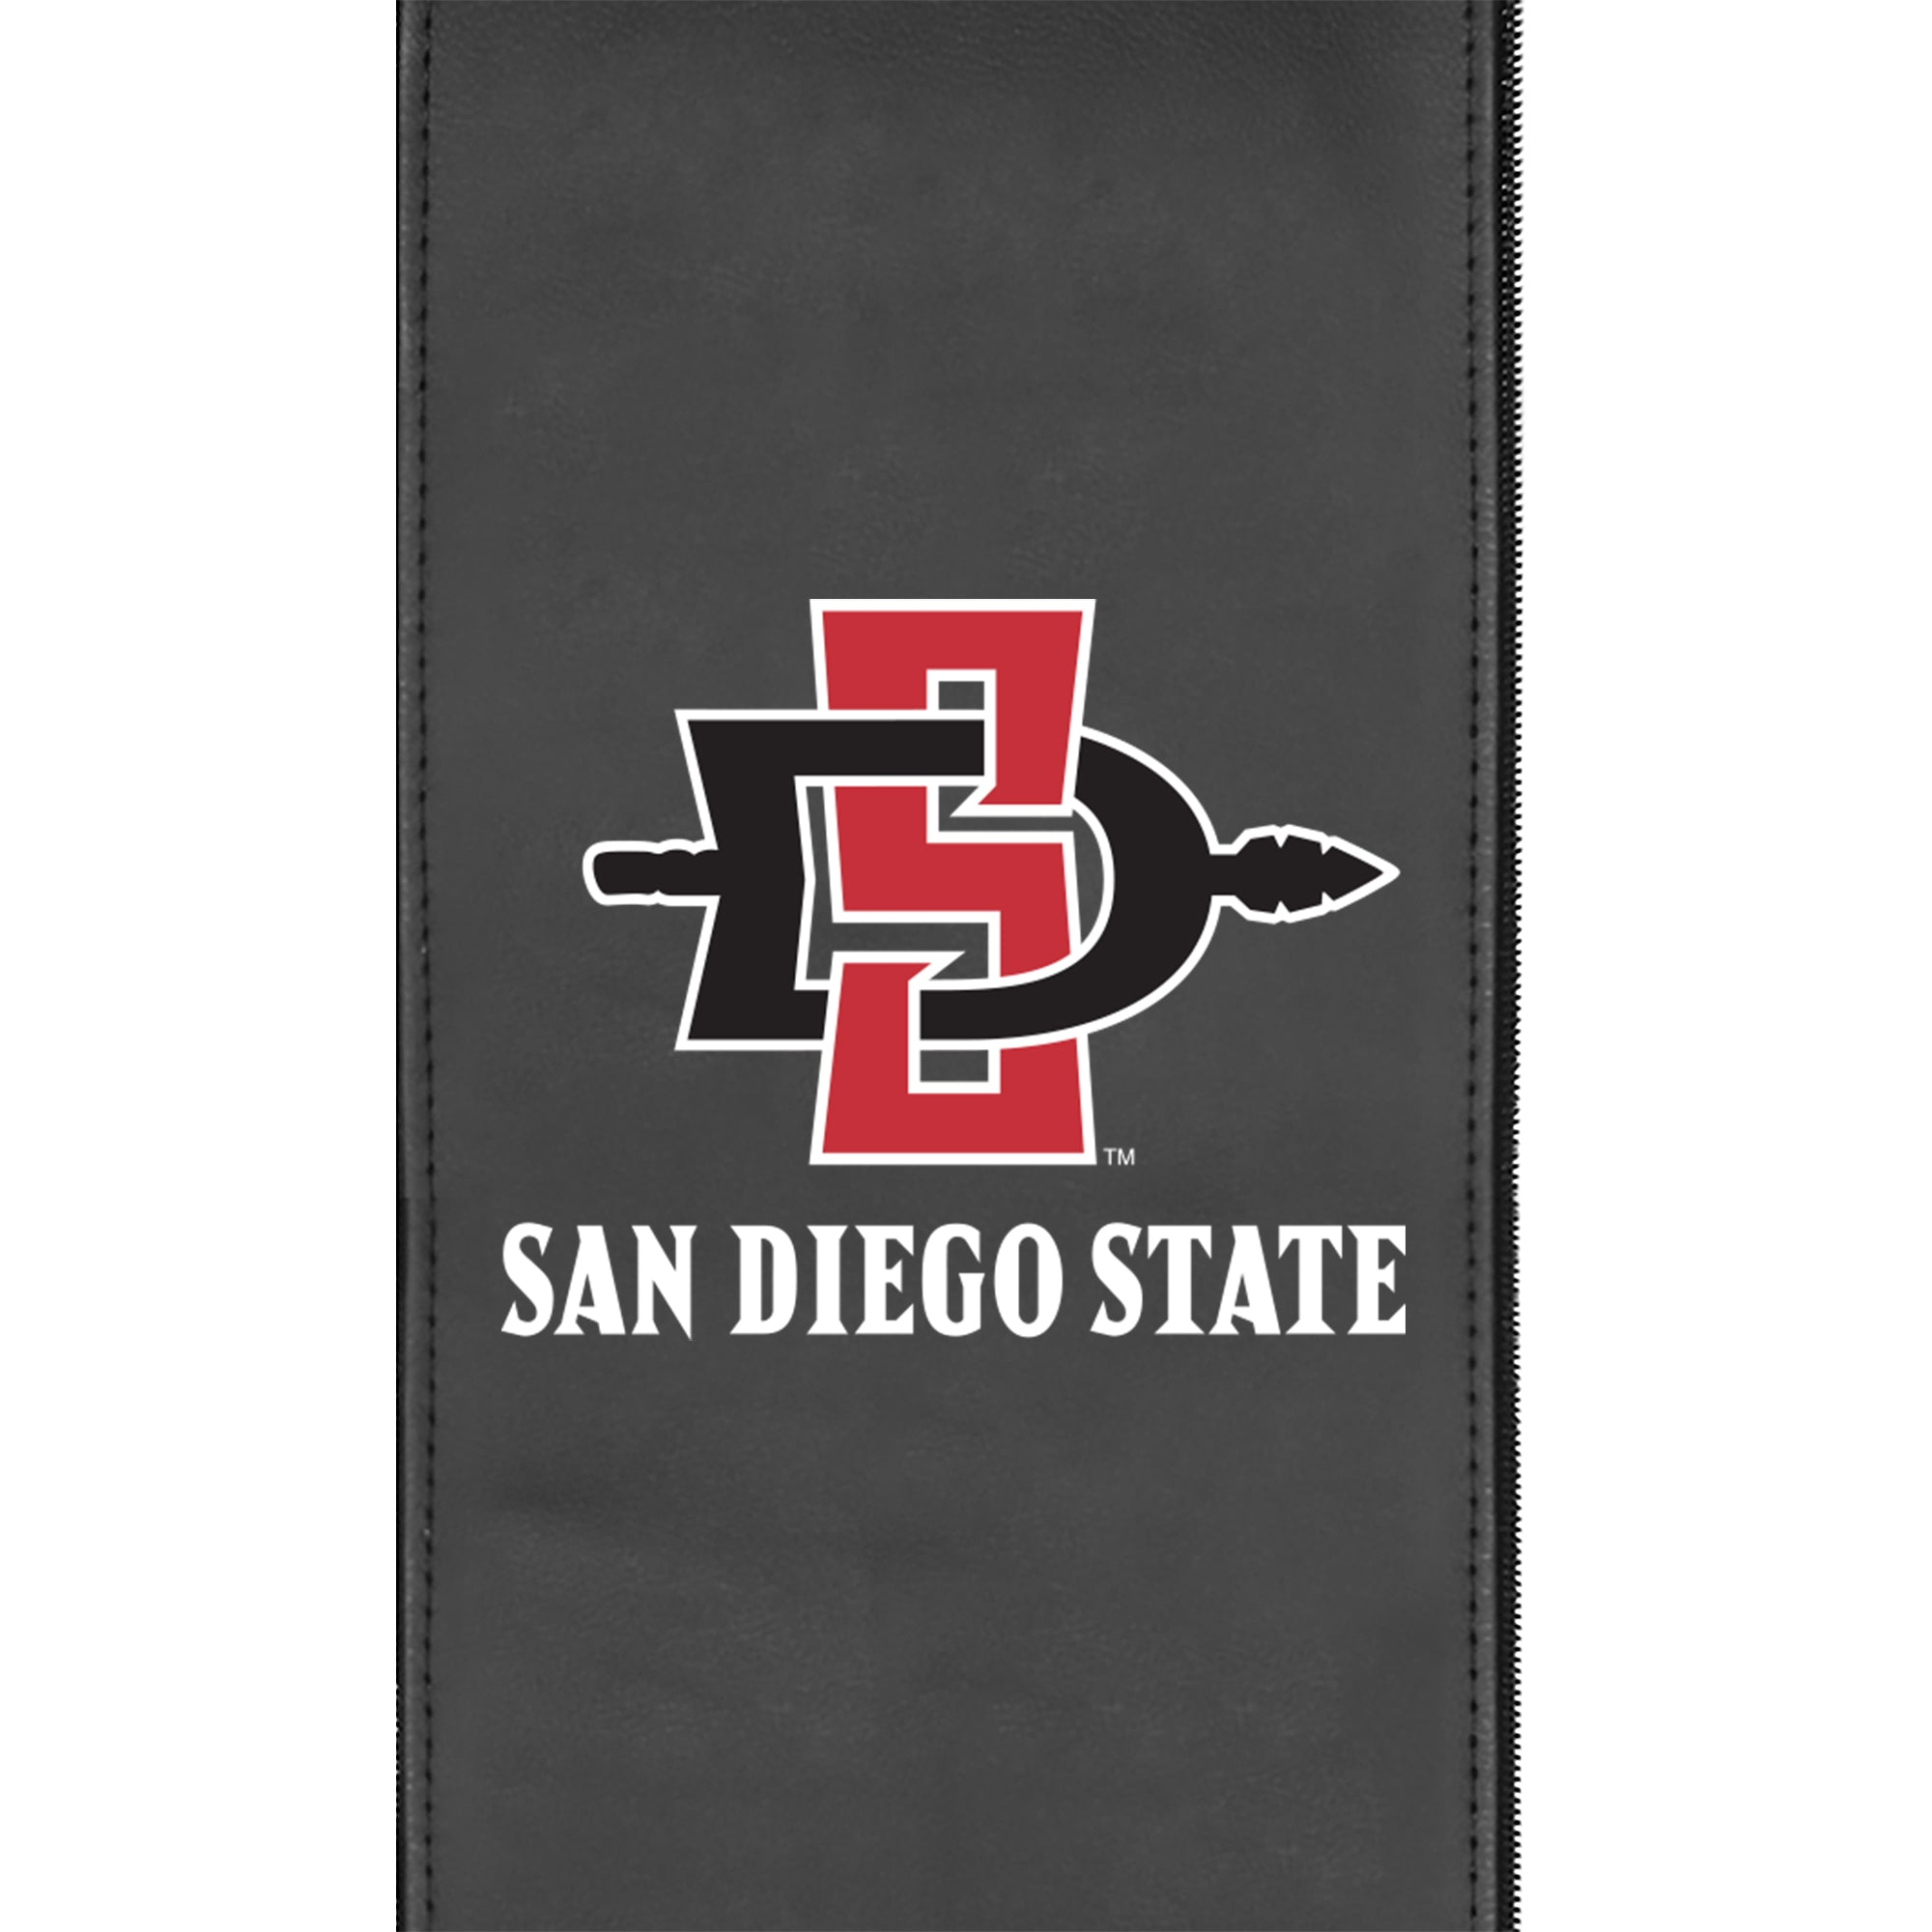 Game Rocker 100 with San Diego State Primary